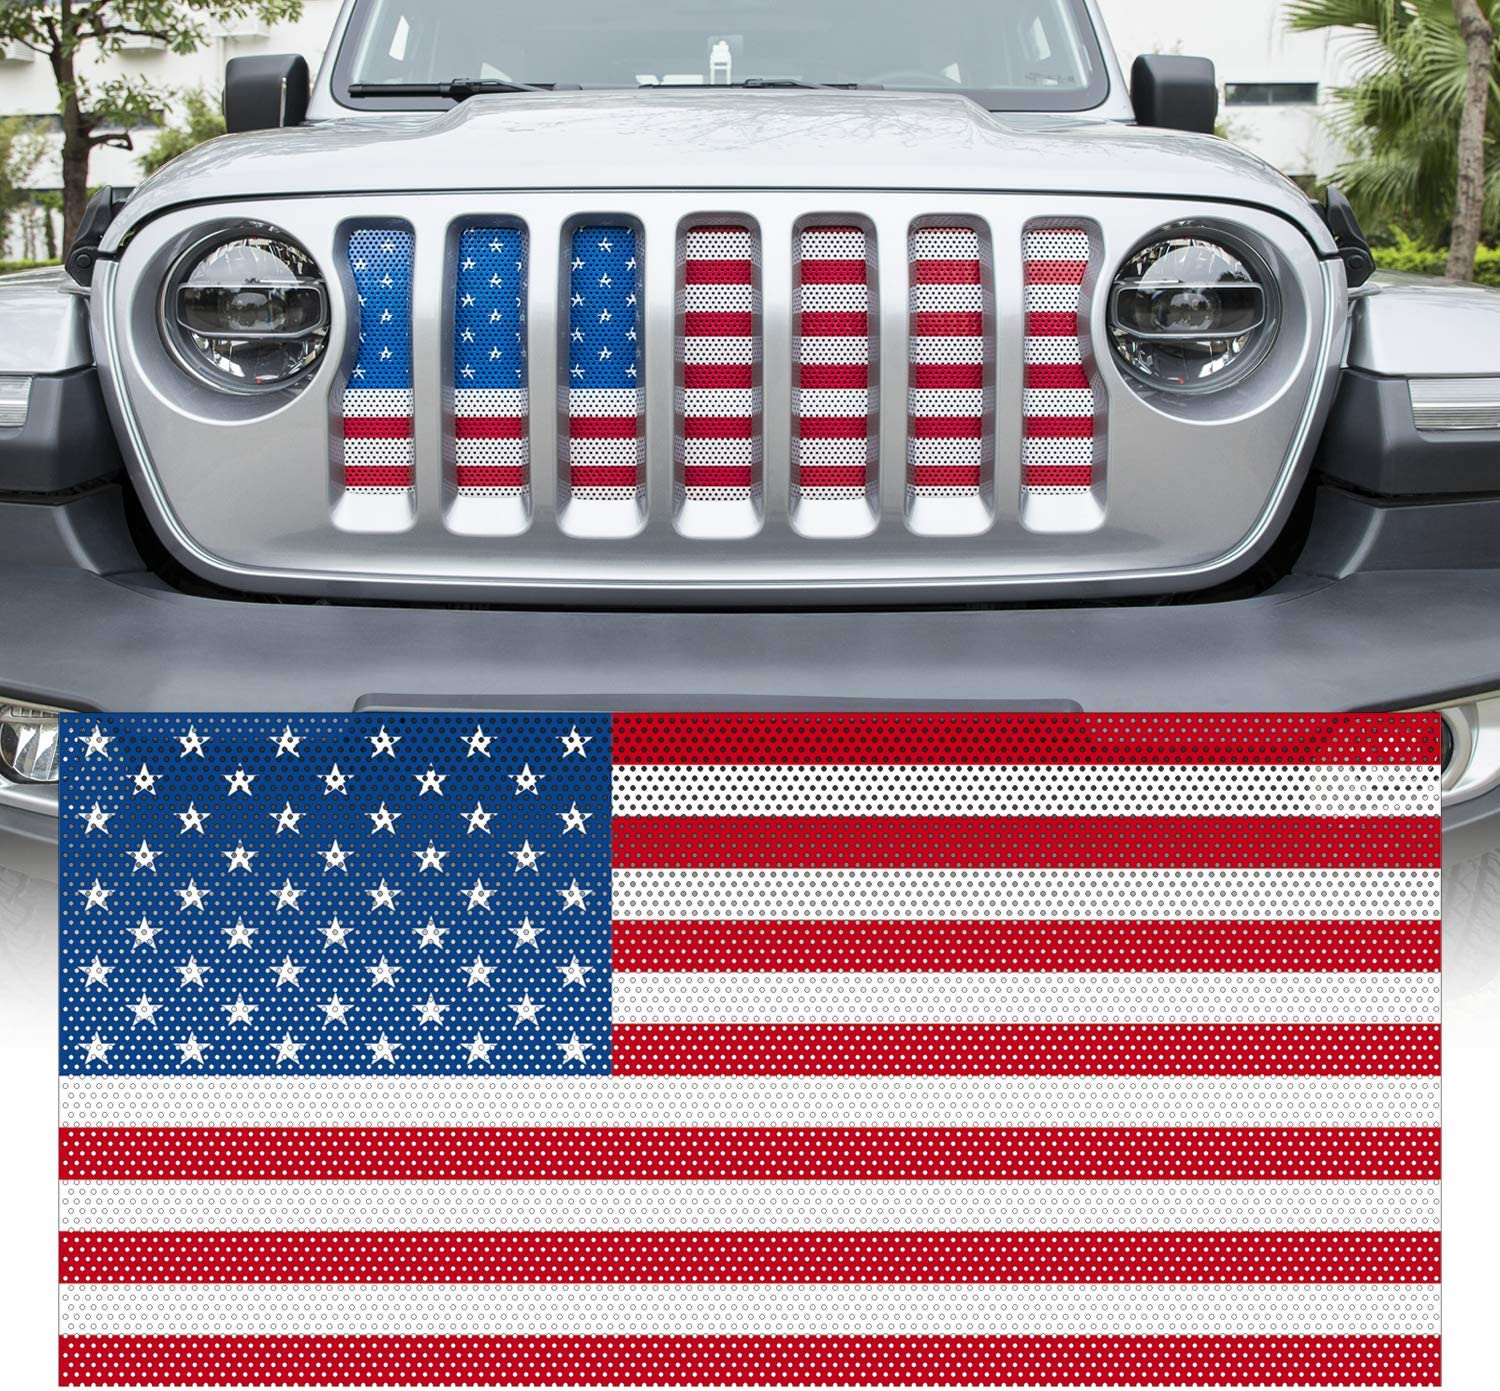 Yoursme Front Grille Grid Grill Insert Screen Challenge the lowest price of cheap Japan ☆ American Flag Desi